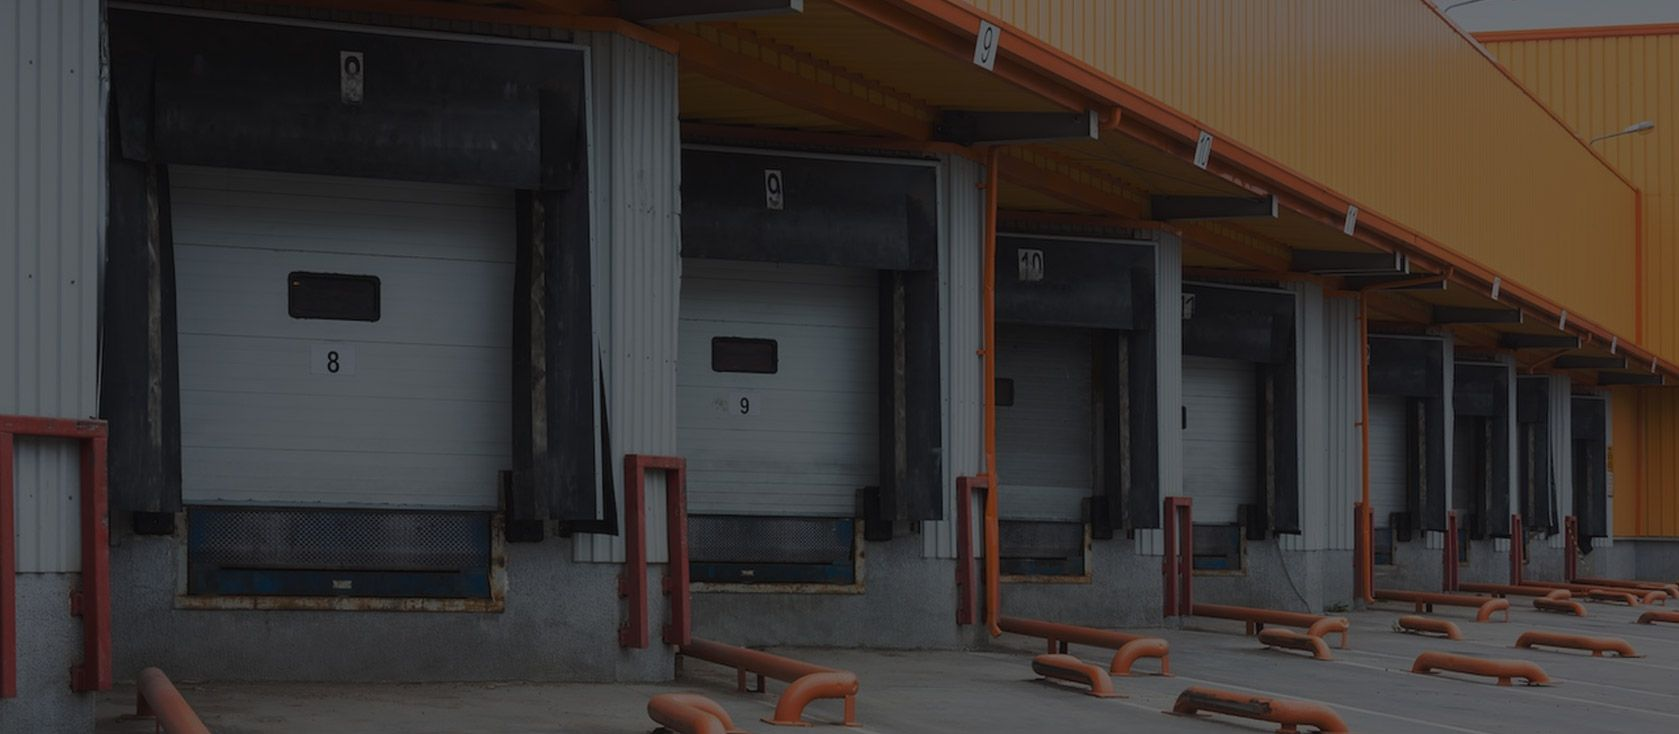 Industrial Door Systems Houston Tx In 2020 Industrial Door Industrial Doors